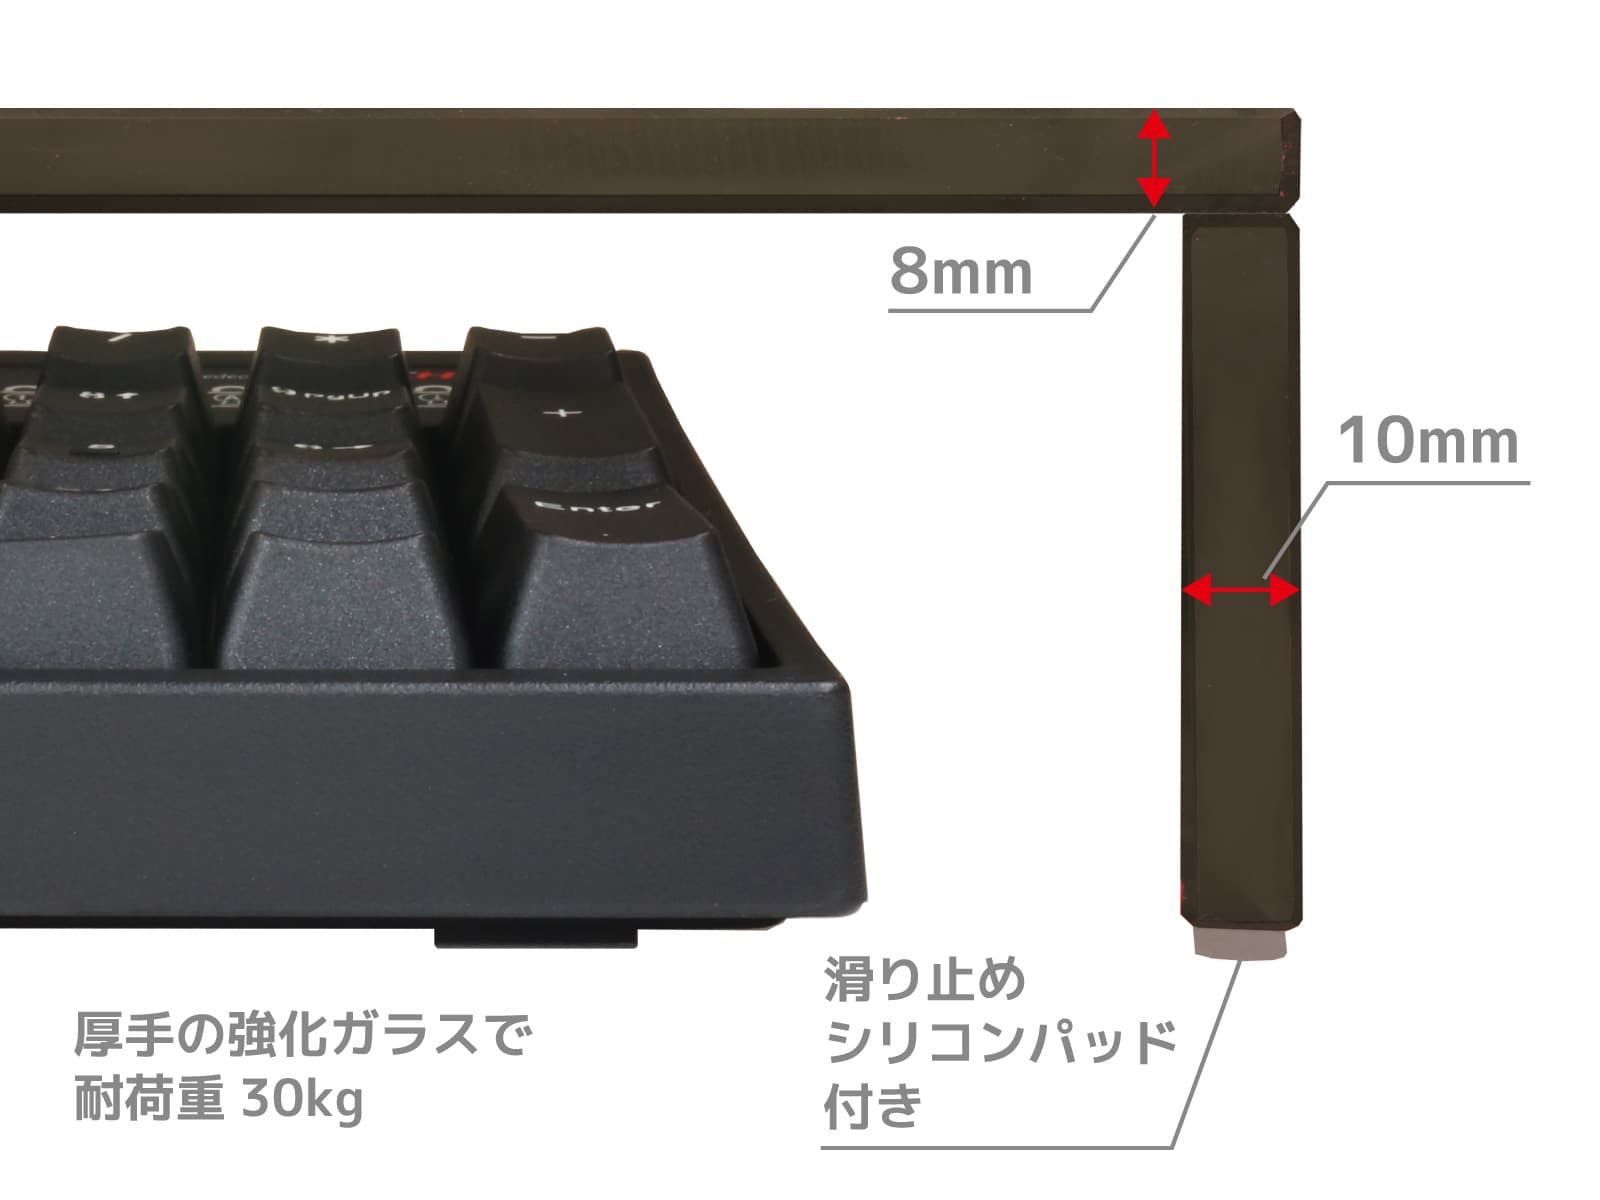 crystal stand dual 株式会社アーキサイト